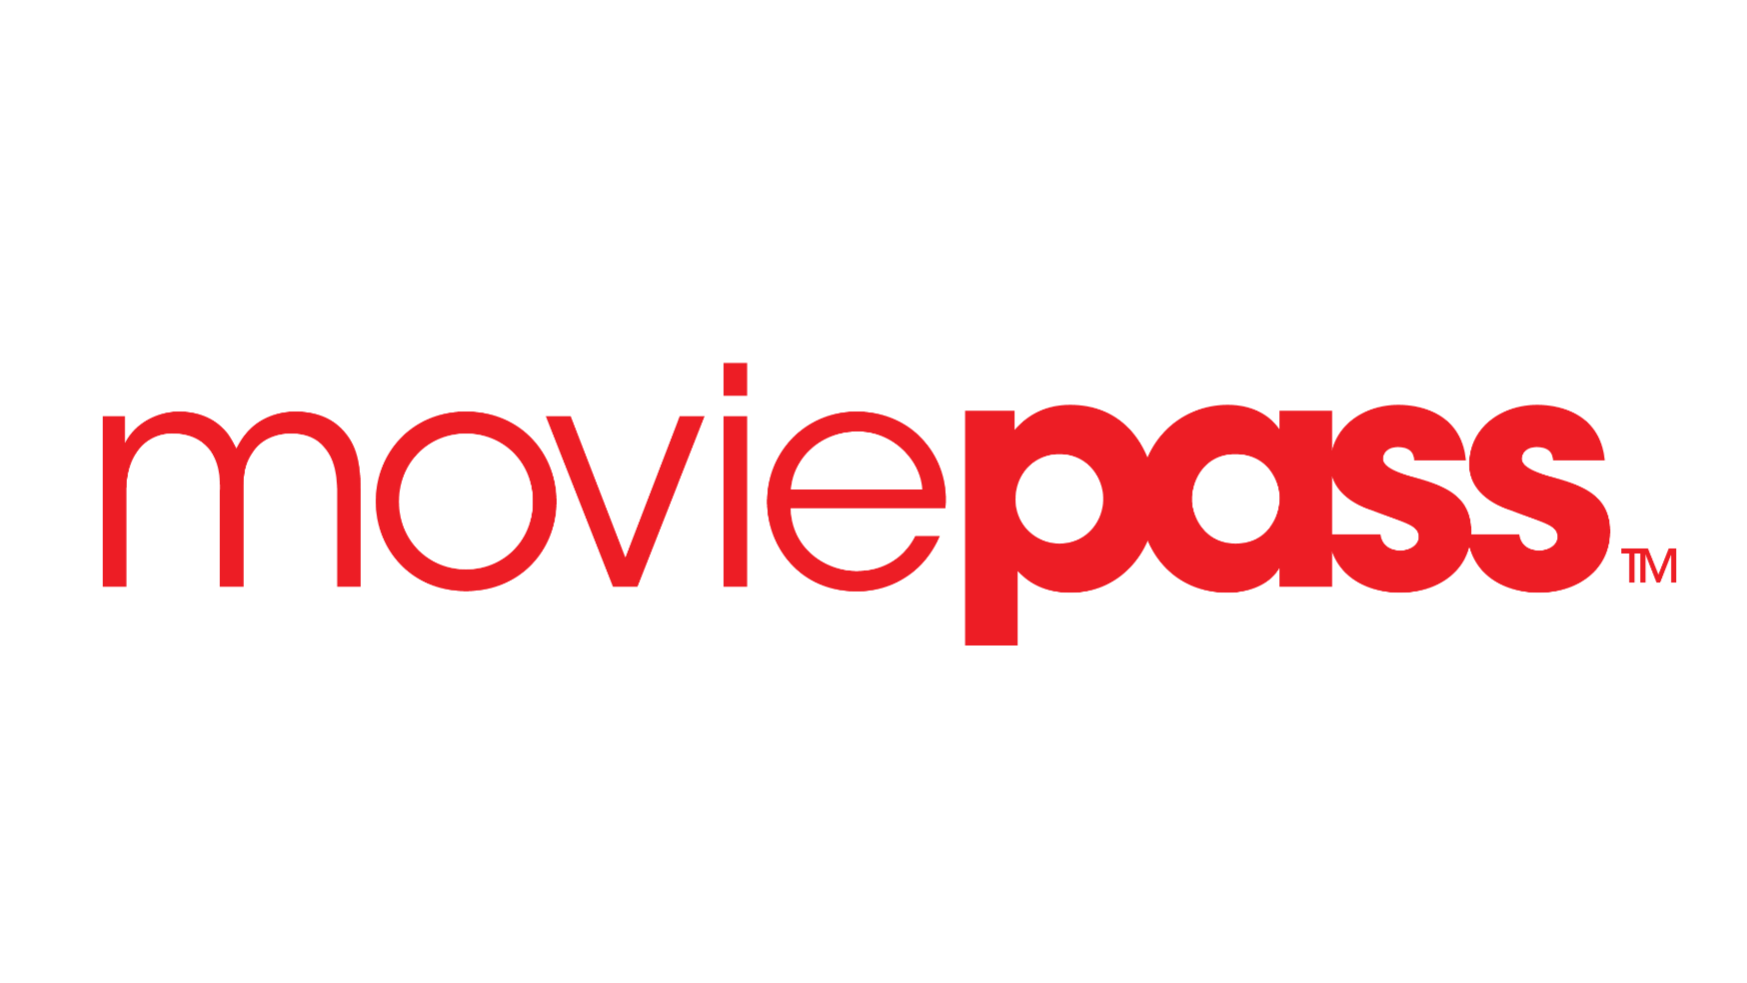 MoviePass suffers outage because it ran out of money, stock falls 70% in one day